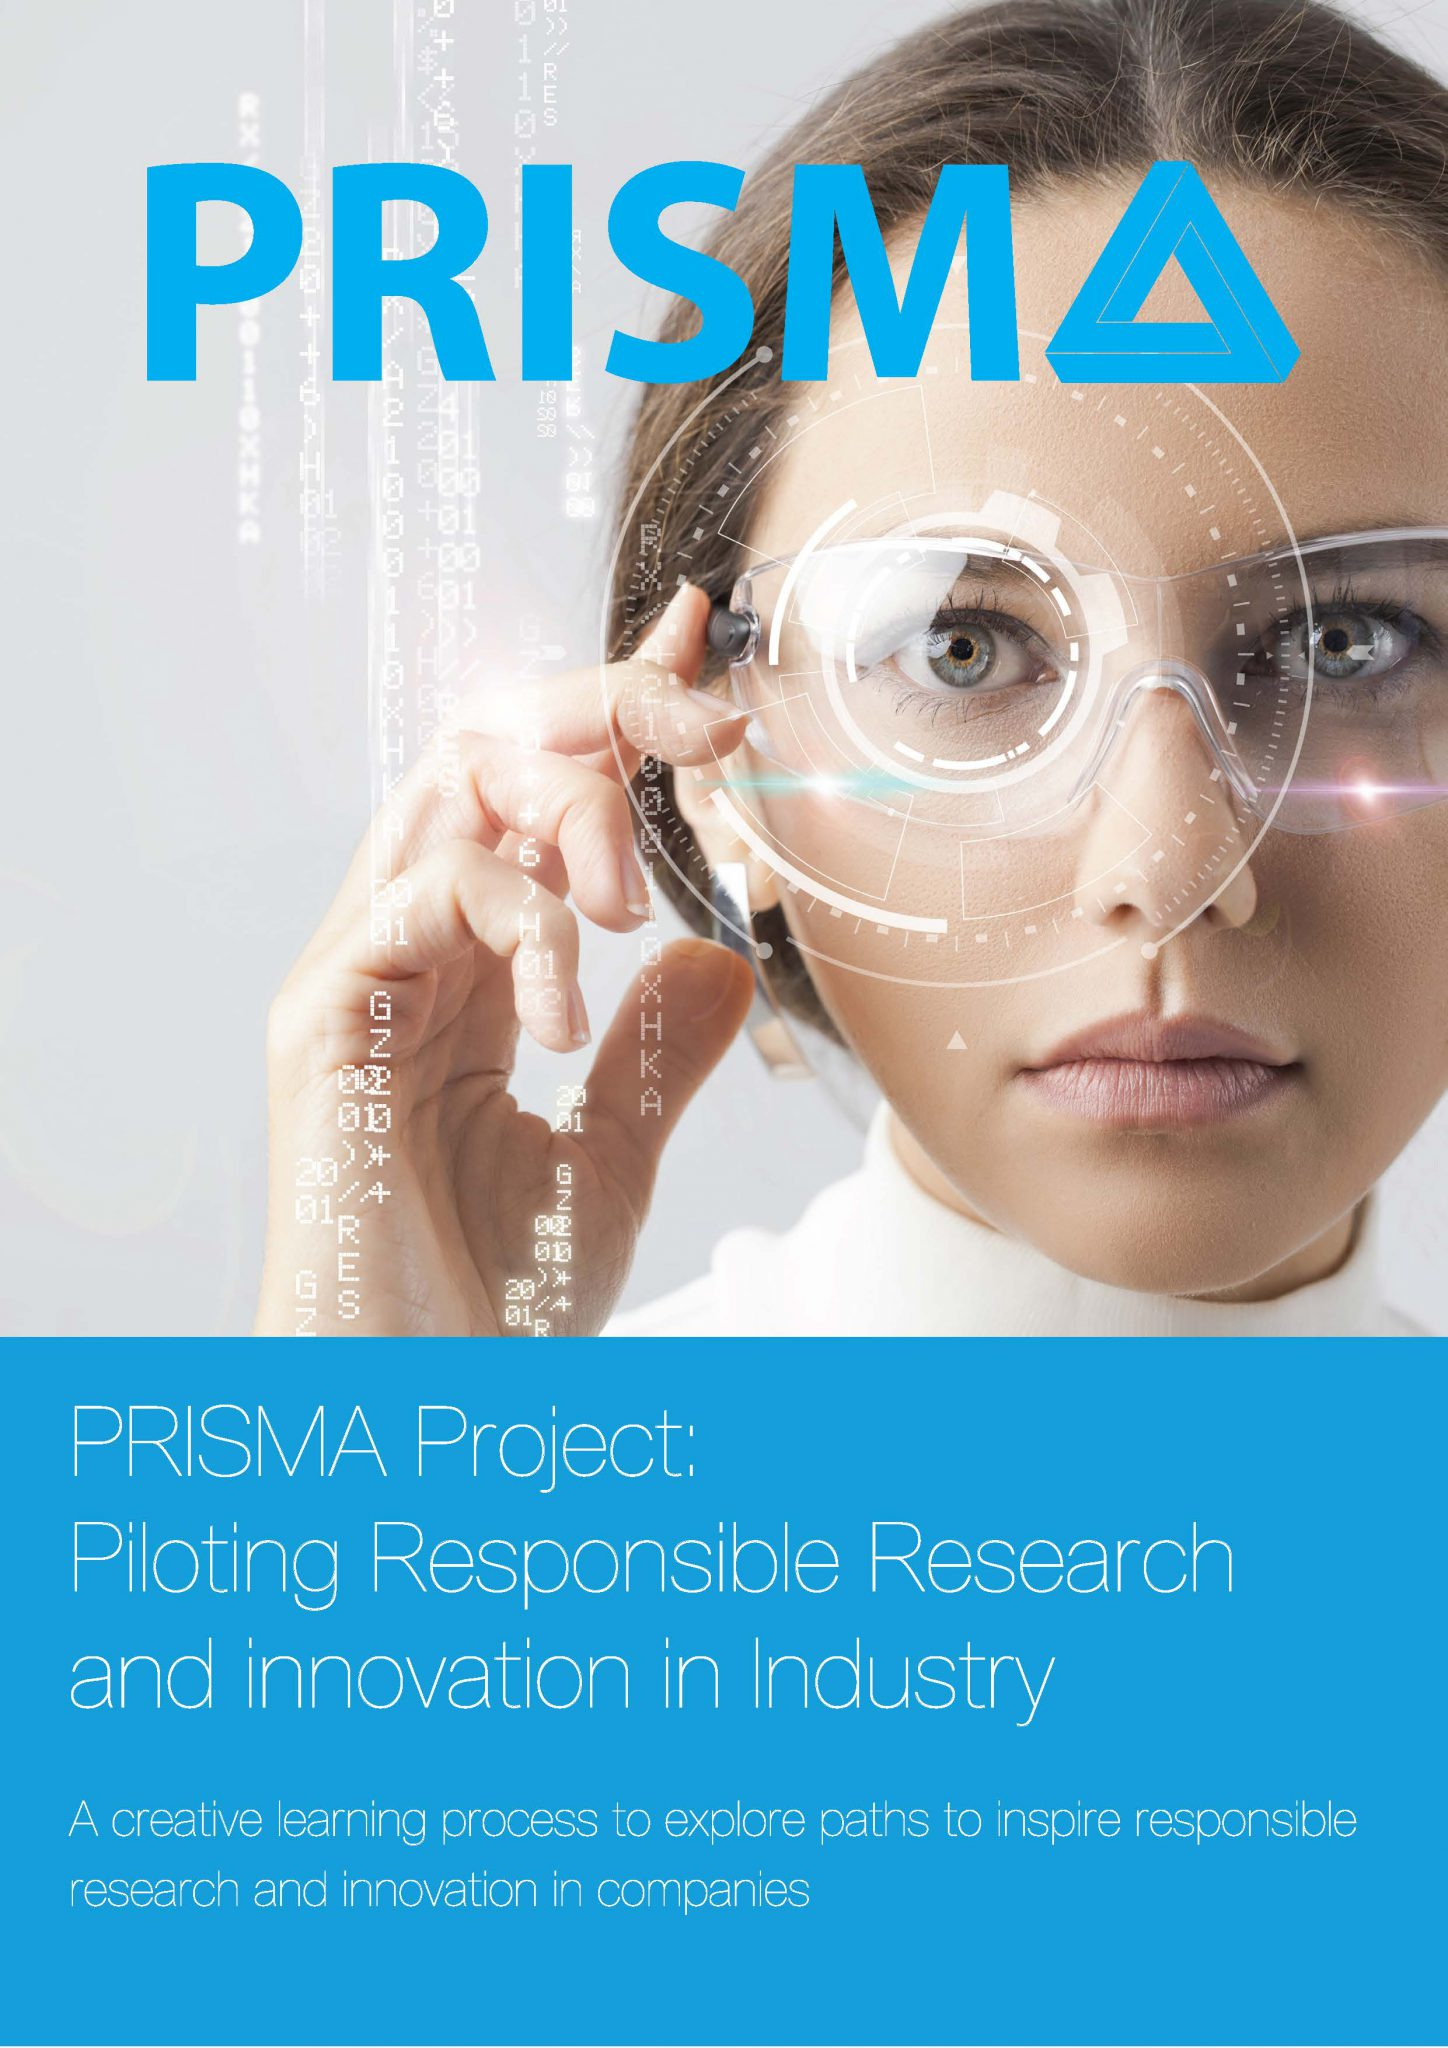 PRISMA Project: Piloting Responsible Research and innovation in Industry